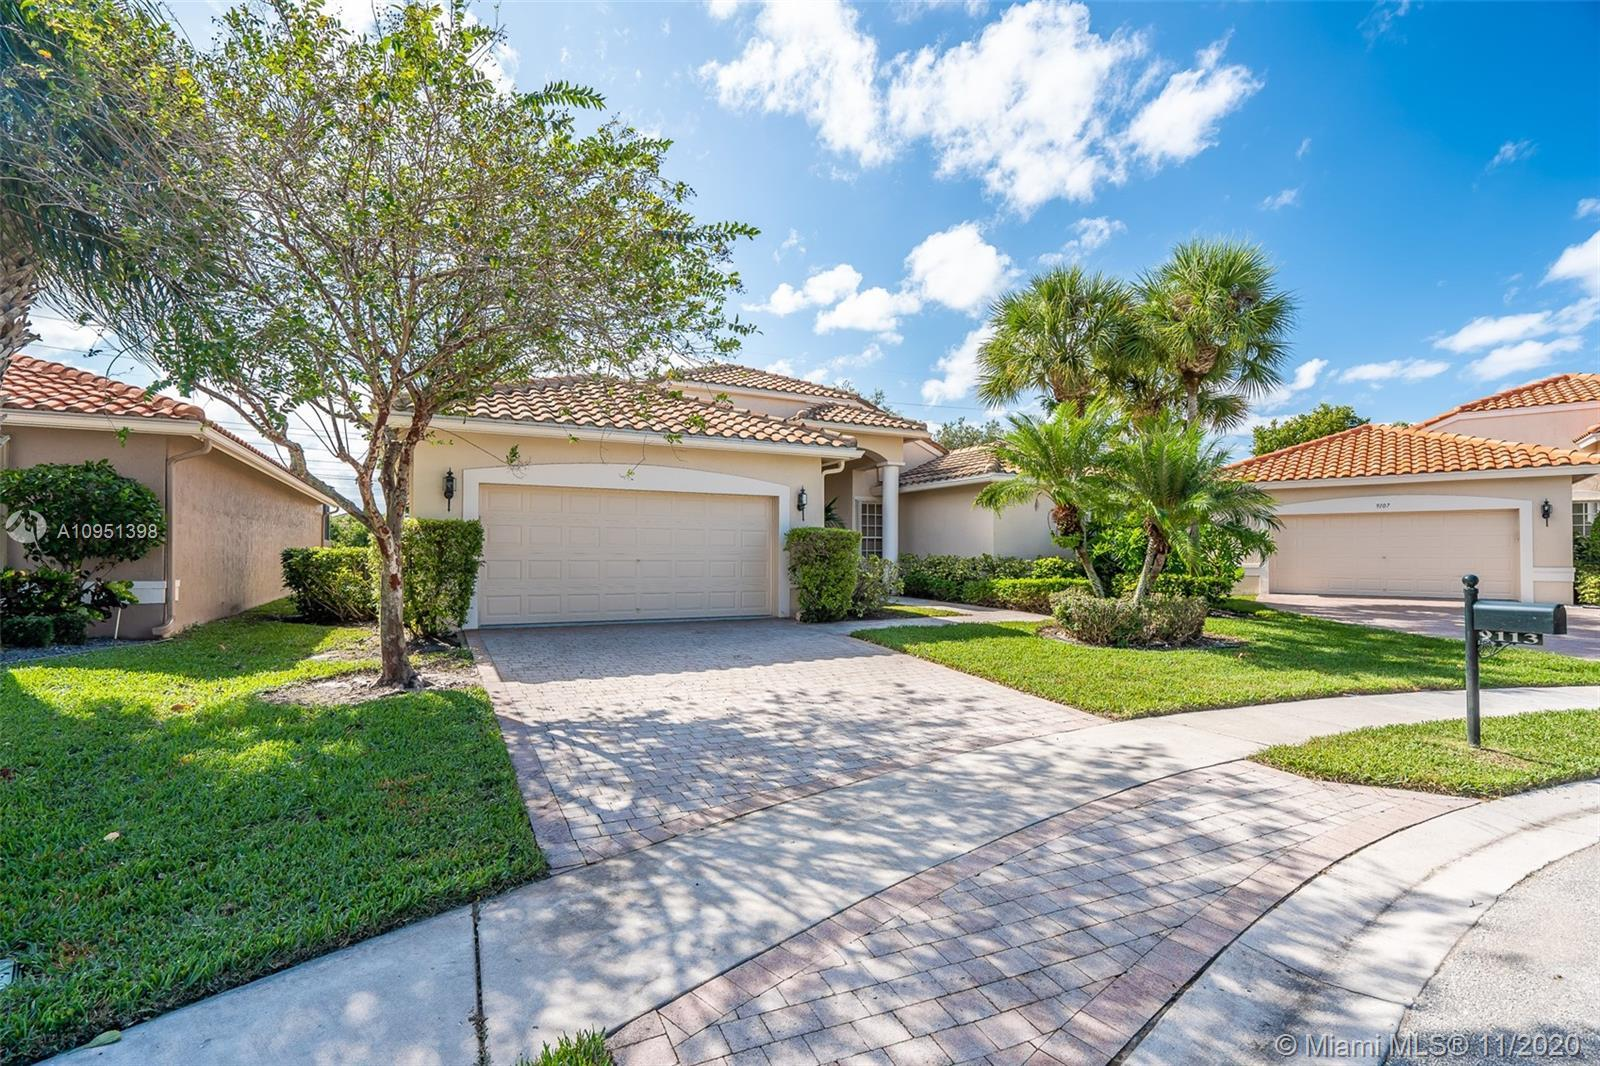 Price to sell in one of Boynton Beaches great subdivisions. Beautiful distribution, spacious 3 bed/2